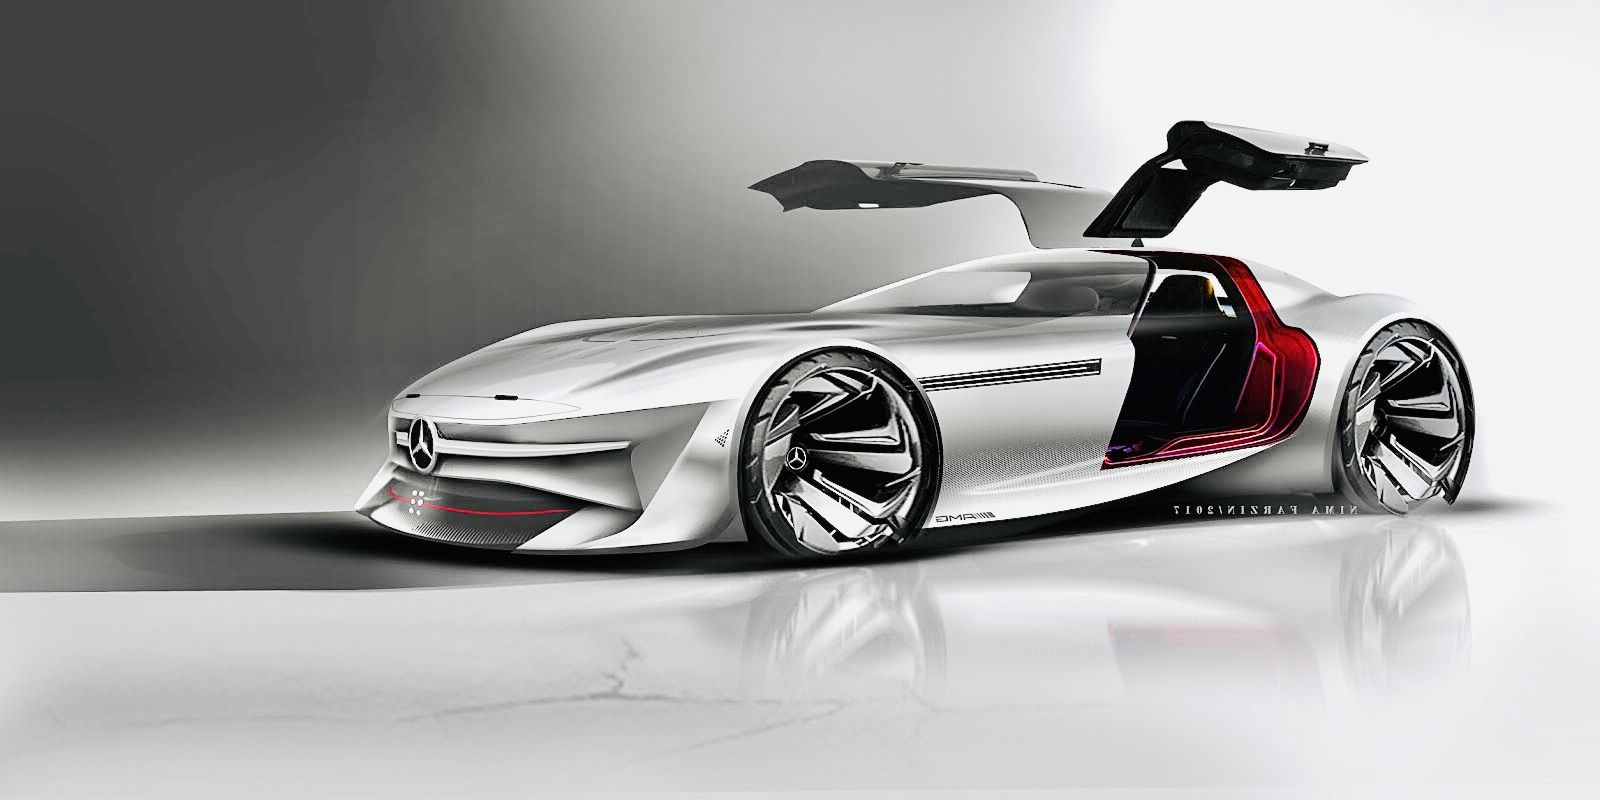 Pin By Patrick V On Super Fast Cars In 2020 Super Fast Cars Fast Cars Sports Car